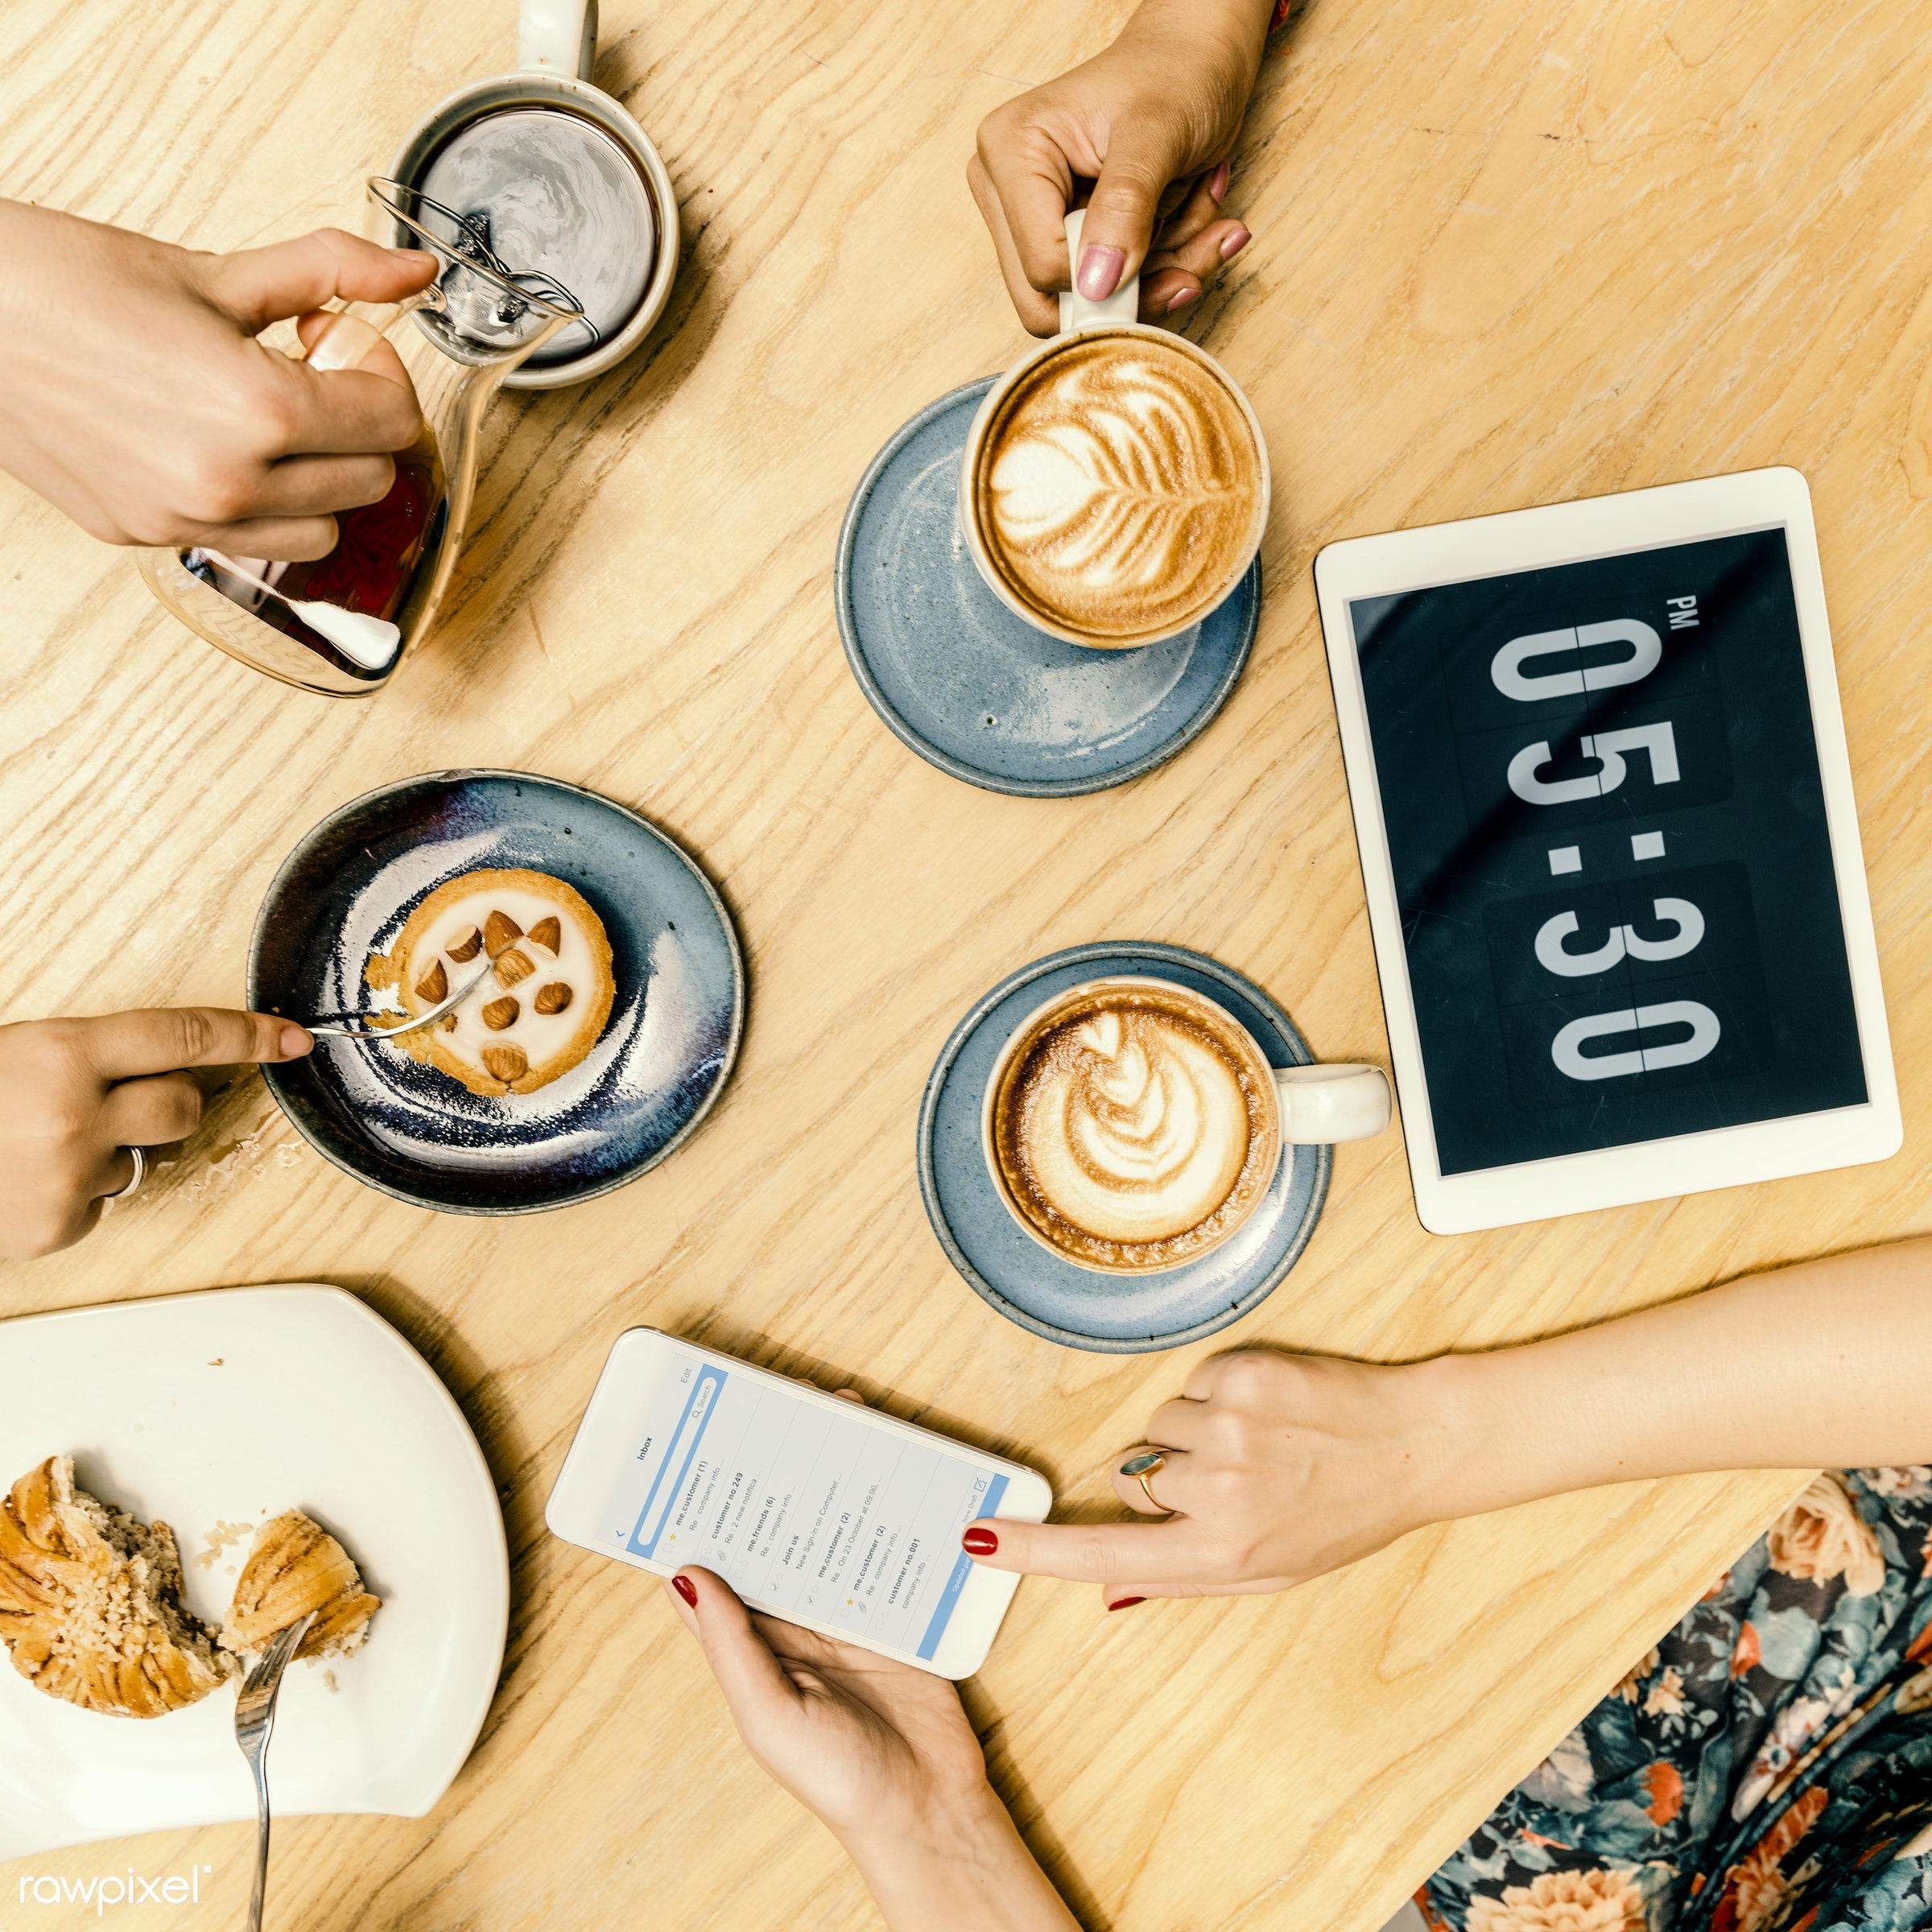 application, beverage, browsing, cafe, cake, cappuccino, closeup, coffee, cup, dessert, device, digital, dish, drinking,...